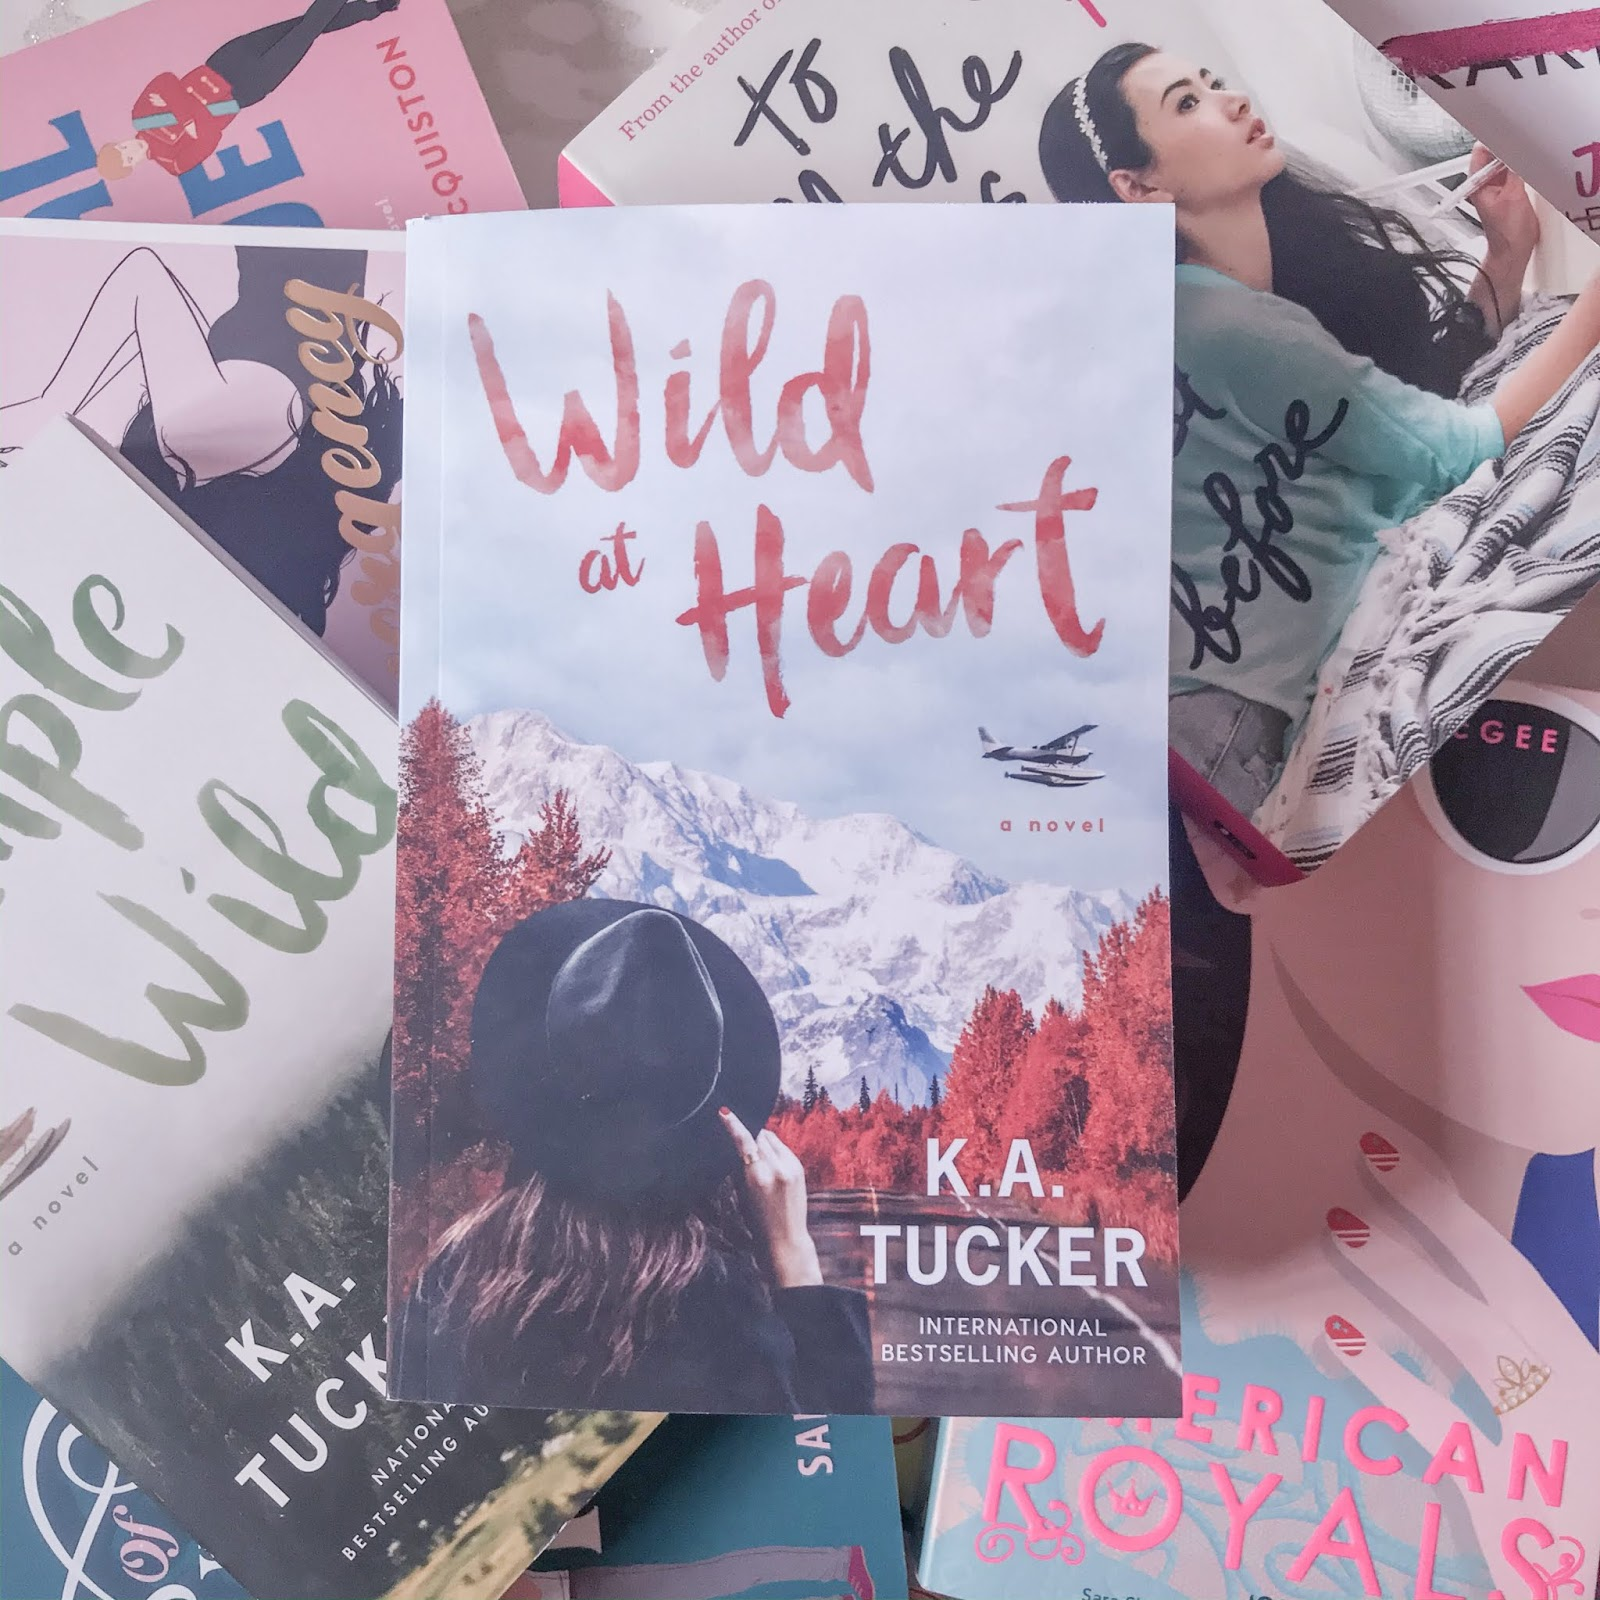 My Month in Books: February 2020